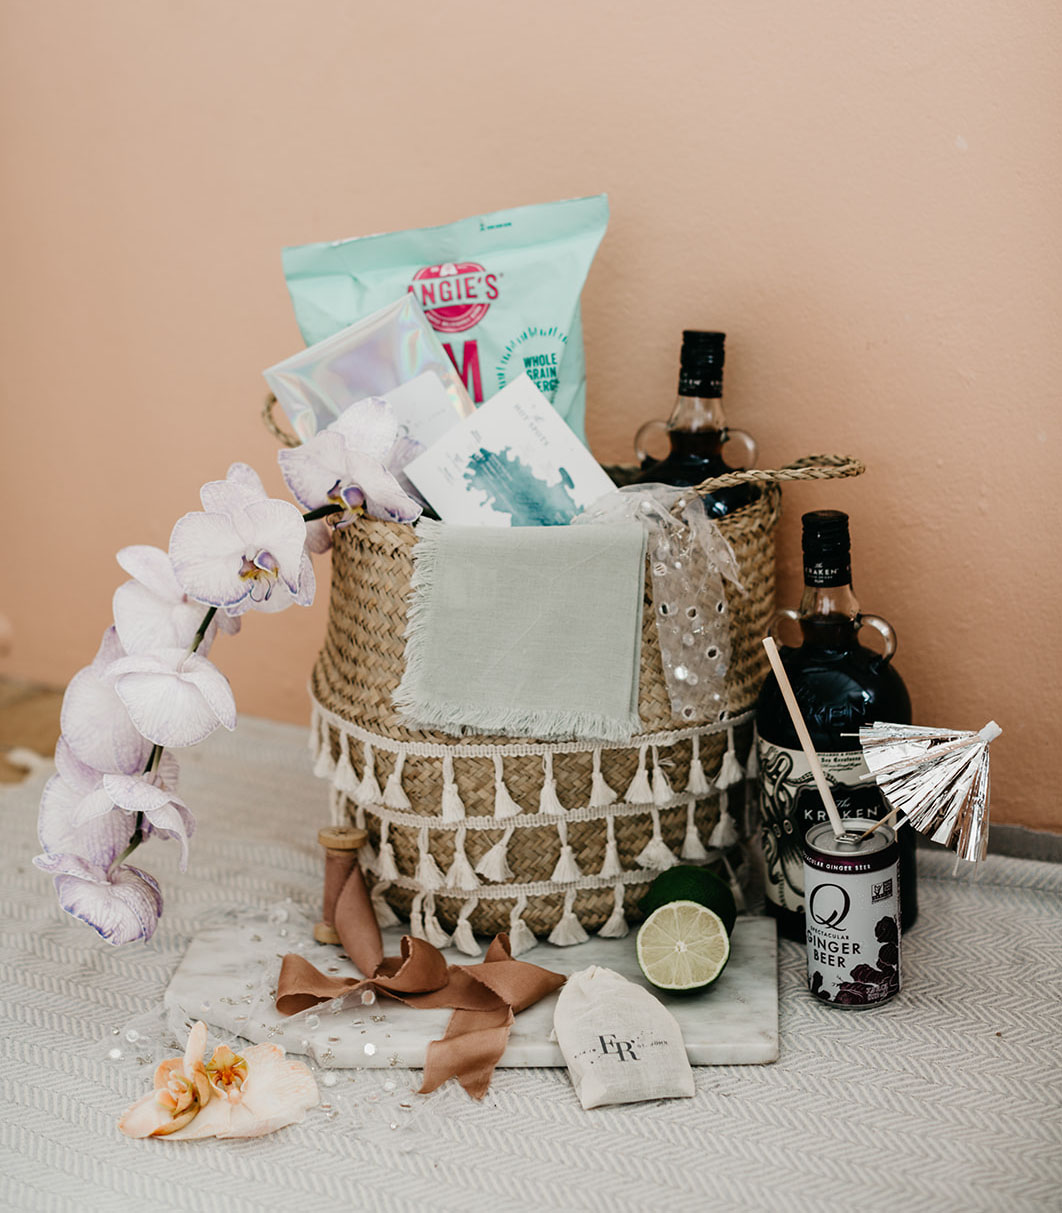 Each guest was welcomed with a gift basket with everything you may need in tropics